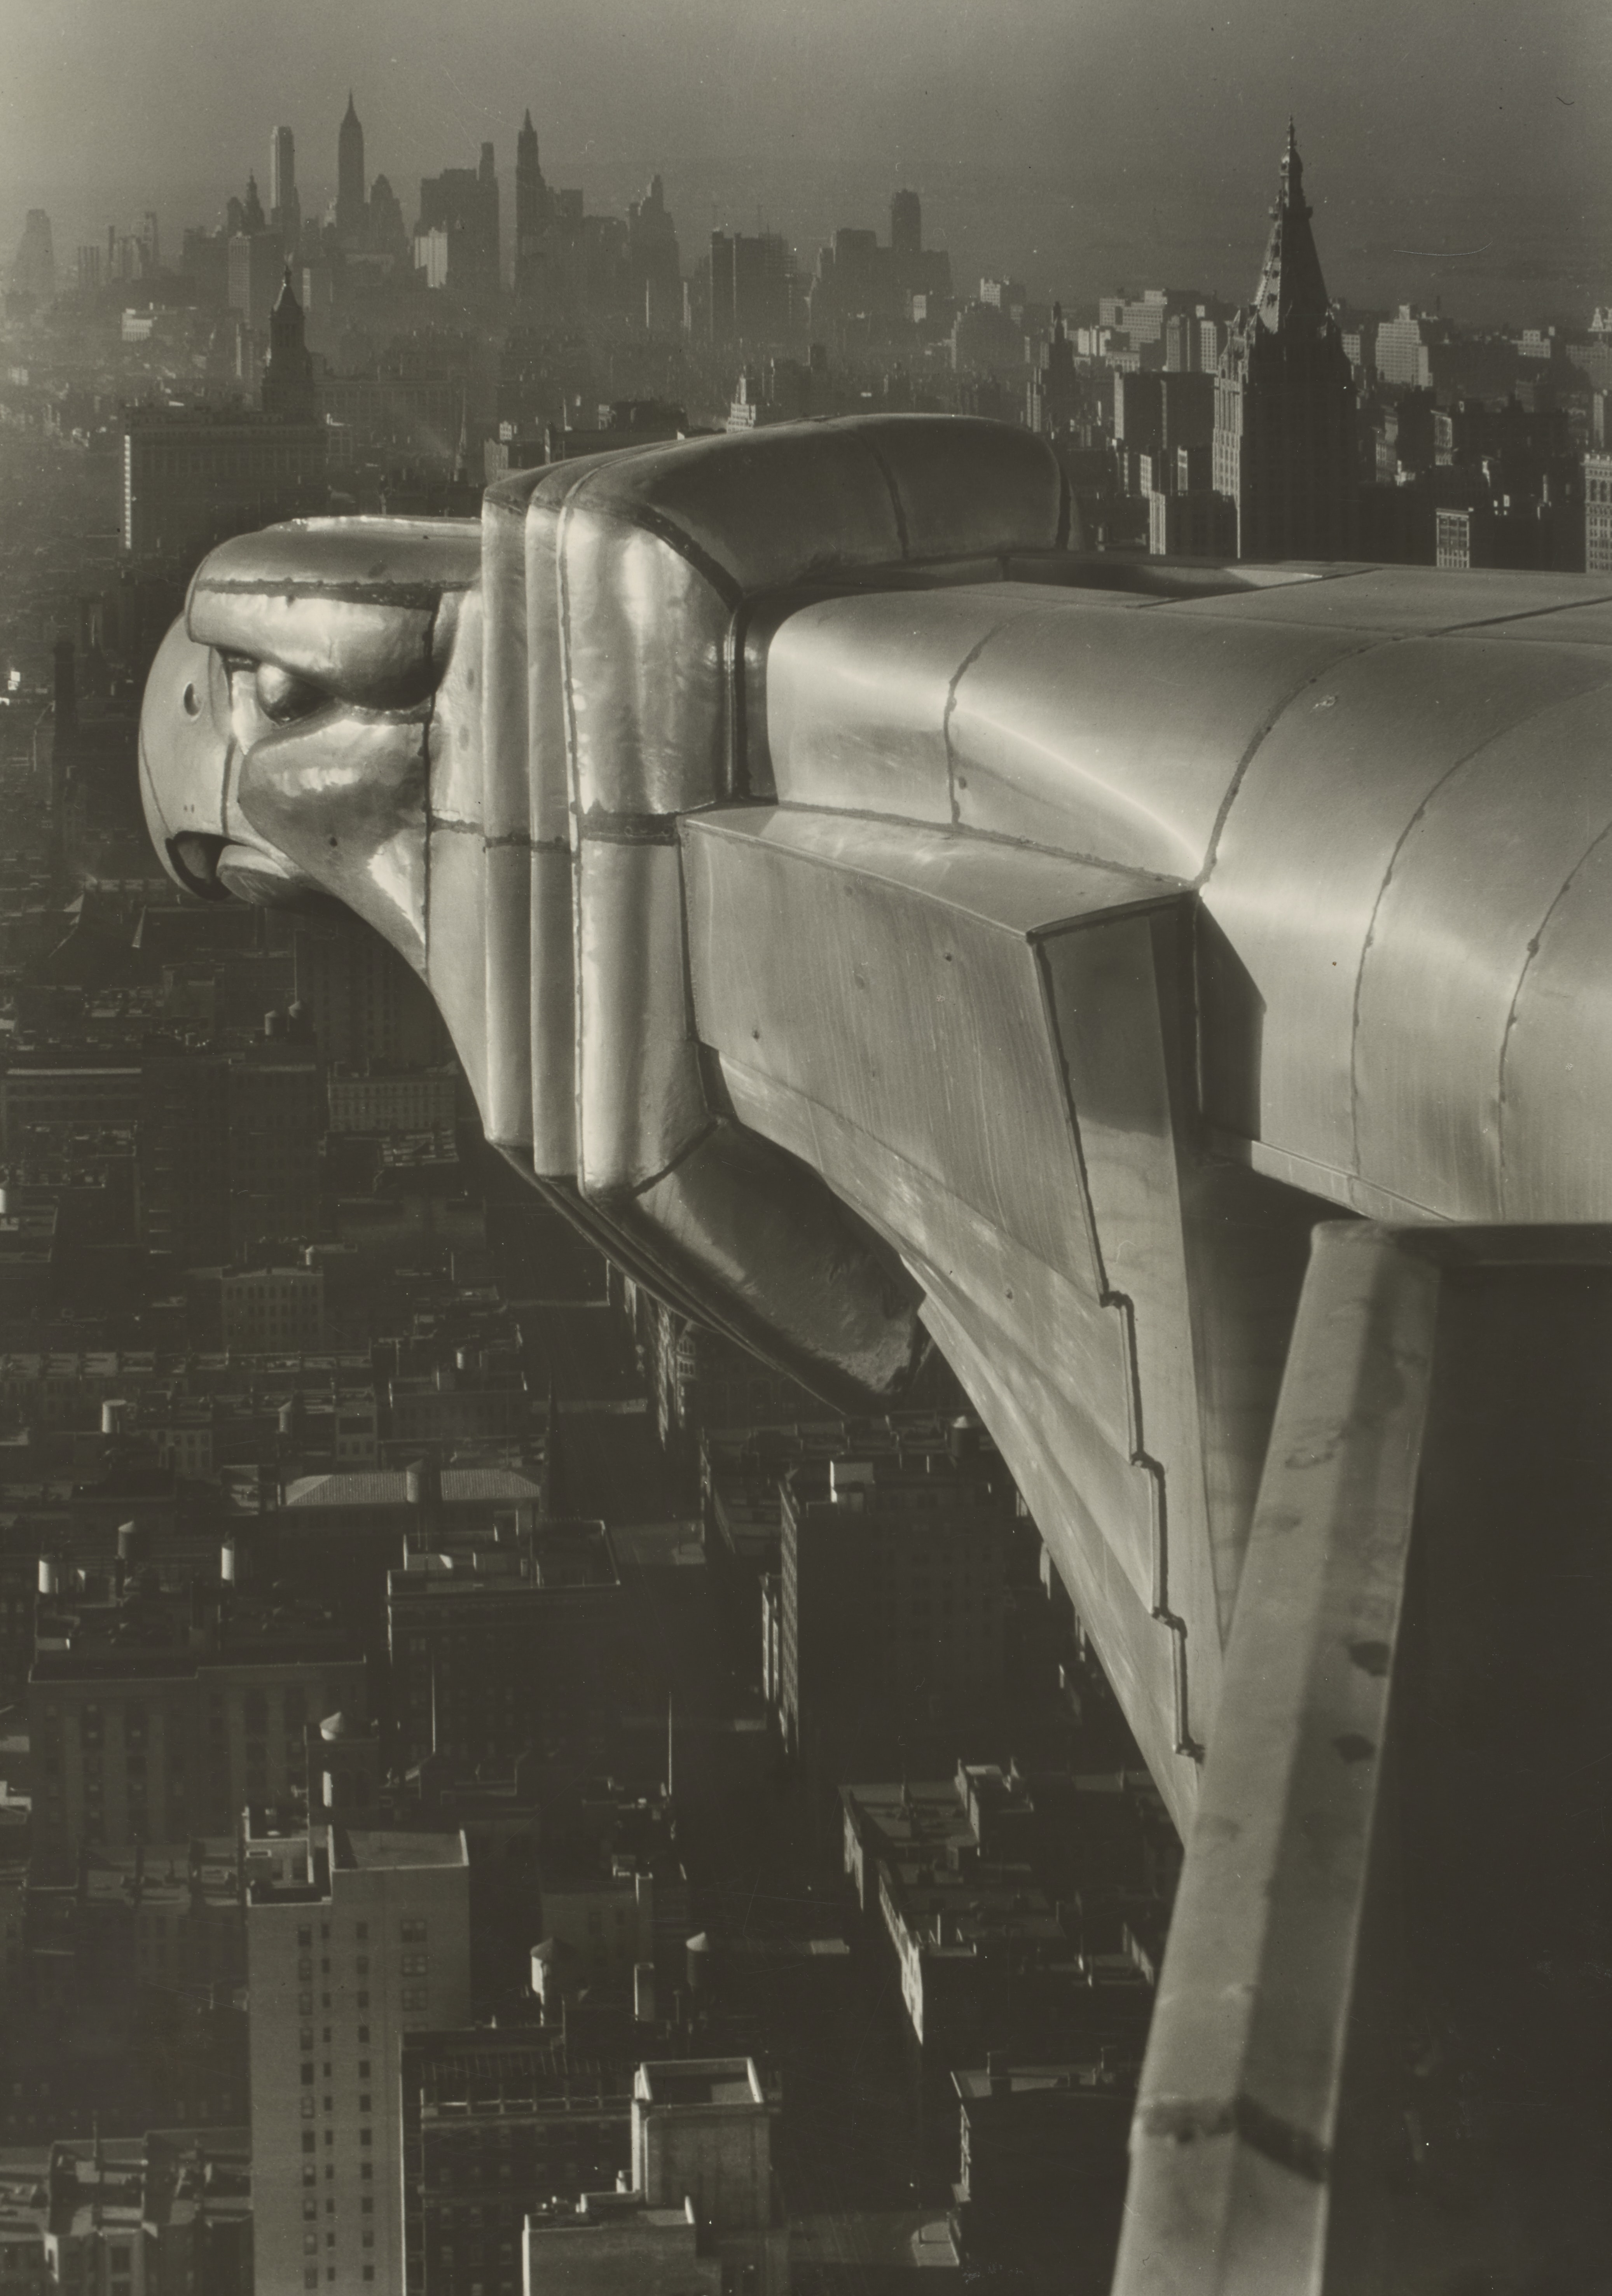 A black-and-white photograph shows one of the gargoyles of the Chrysler Building, other New York skyscrapers fading into the background.